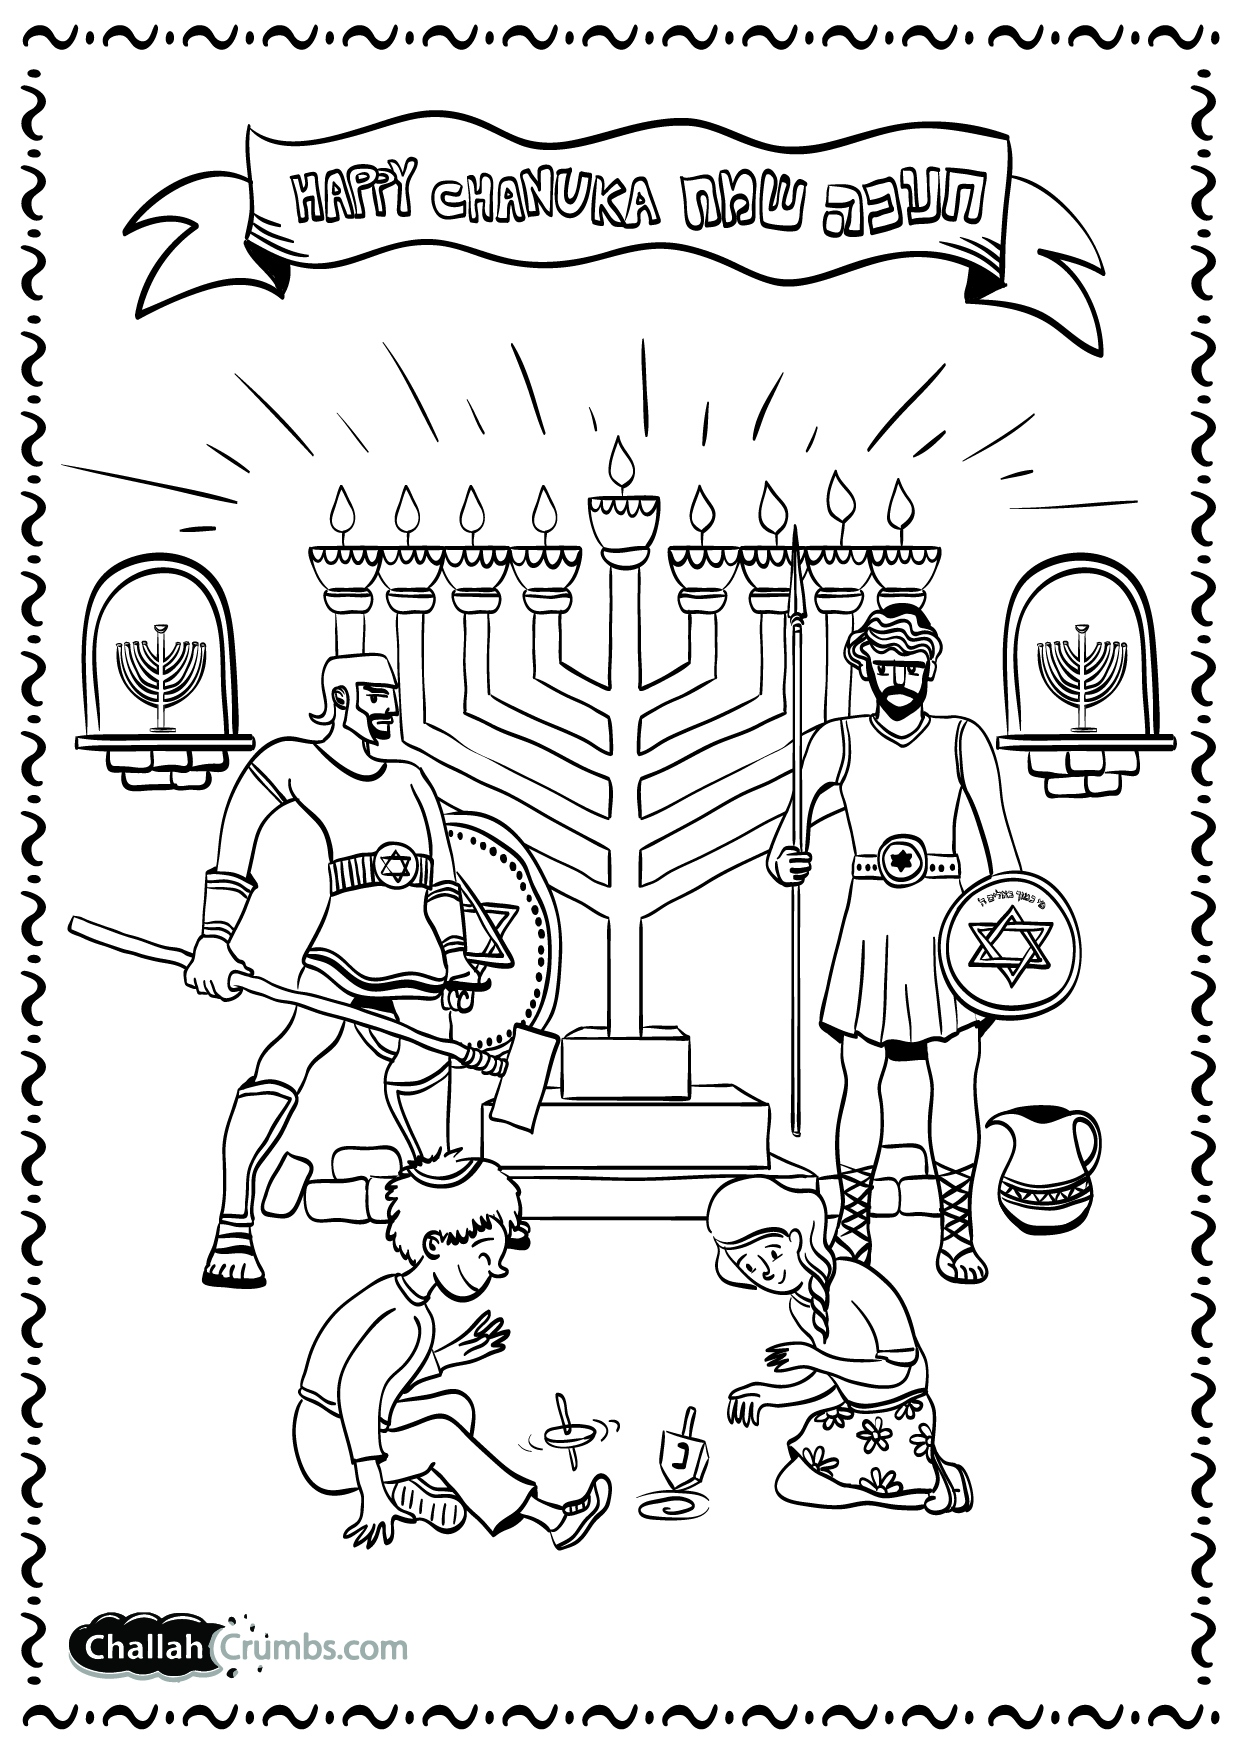 1240x1754 Chanukah Coloring Pages To Print Logo And Design Ideas